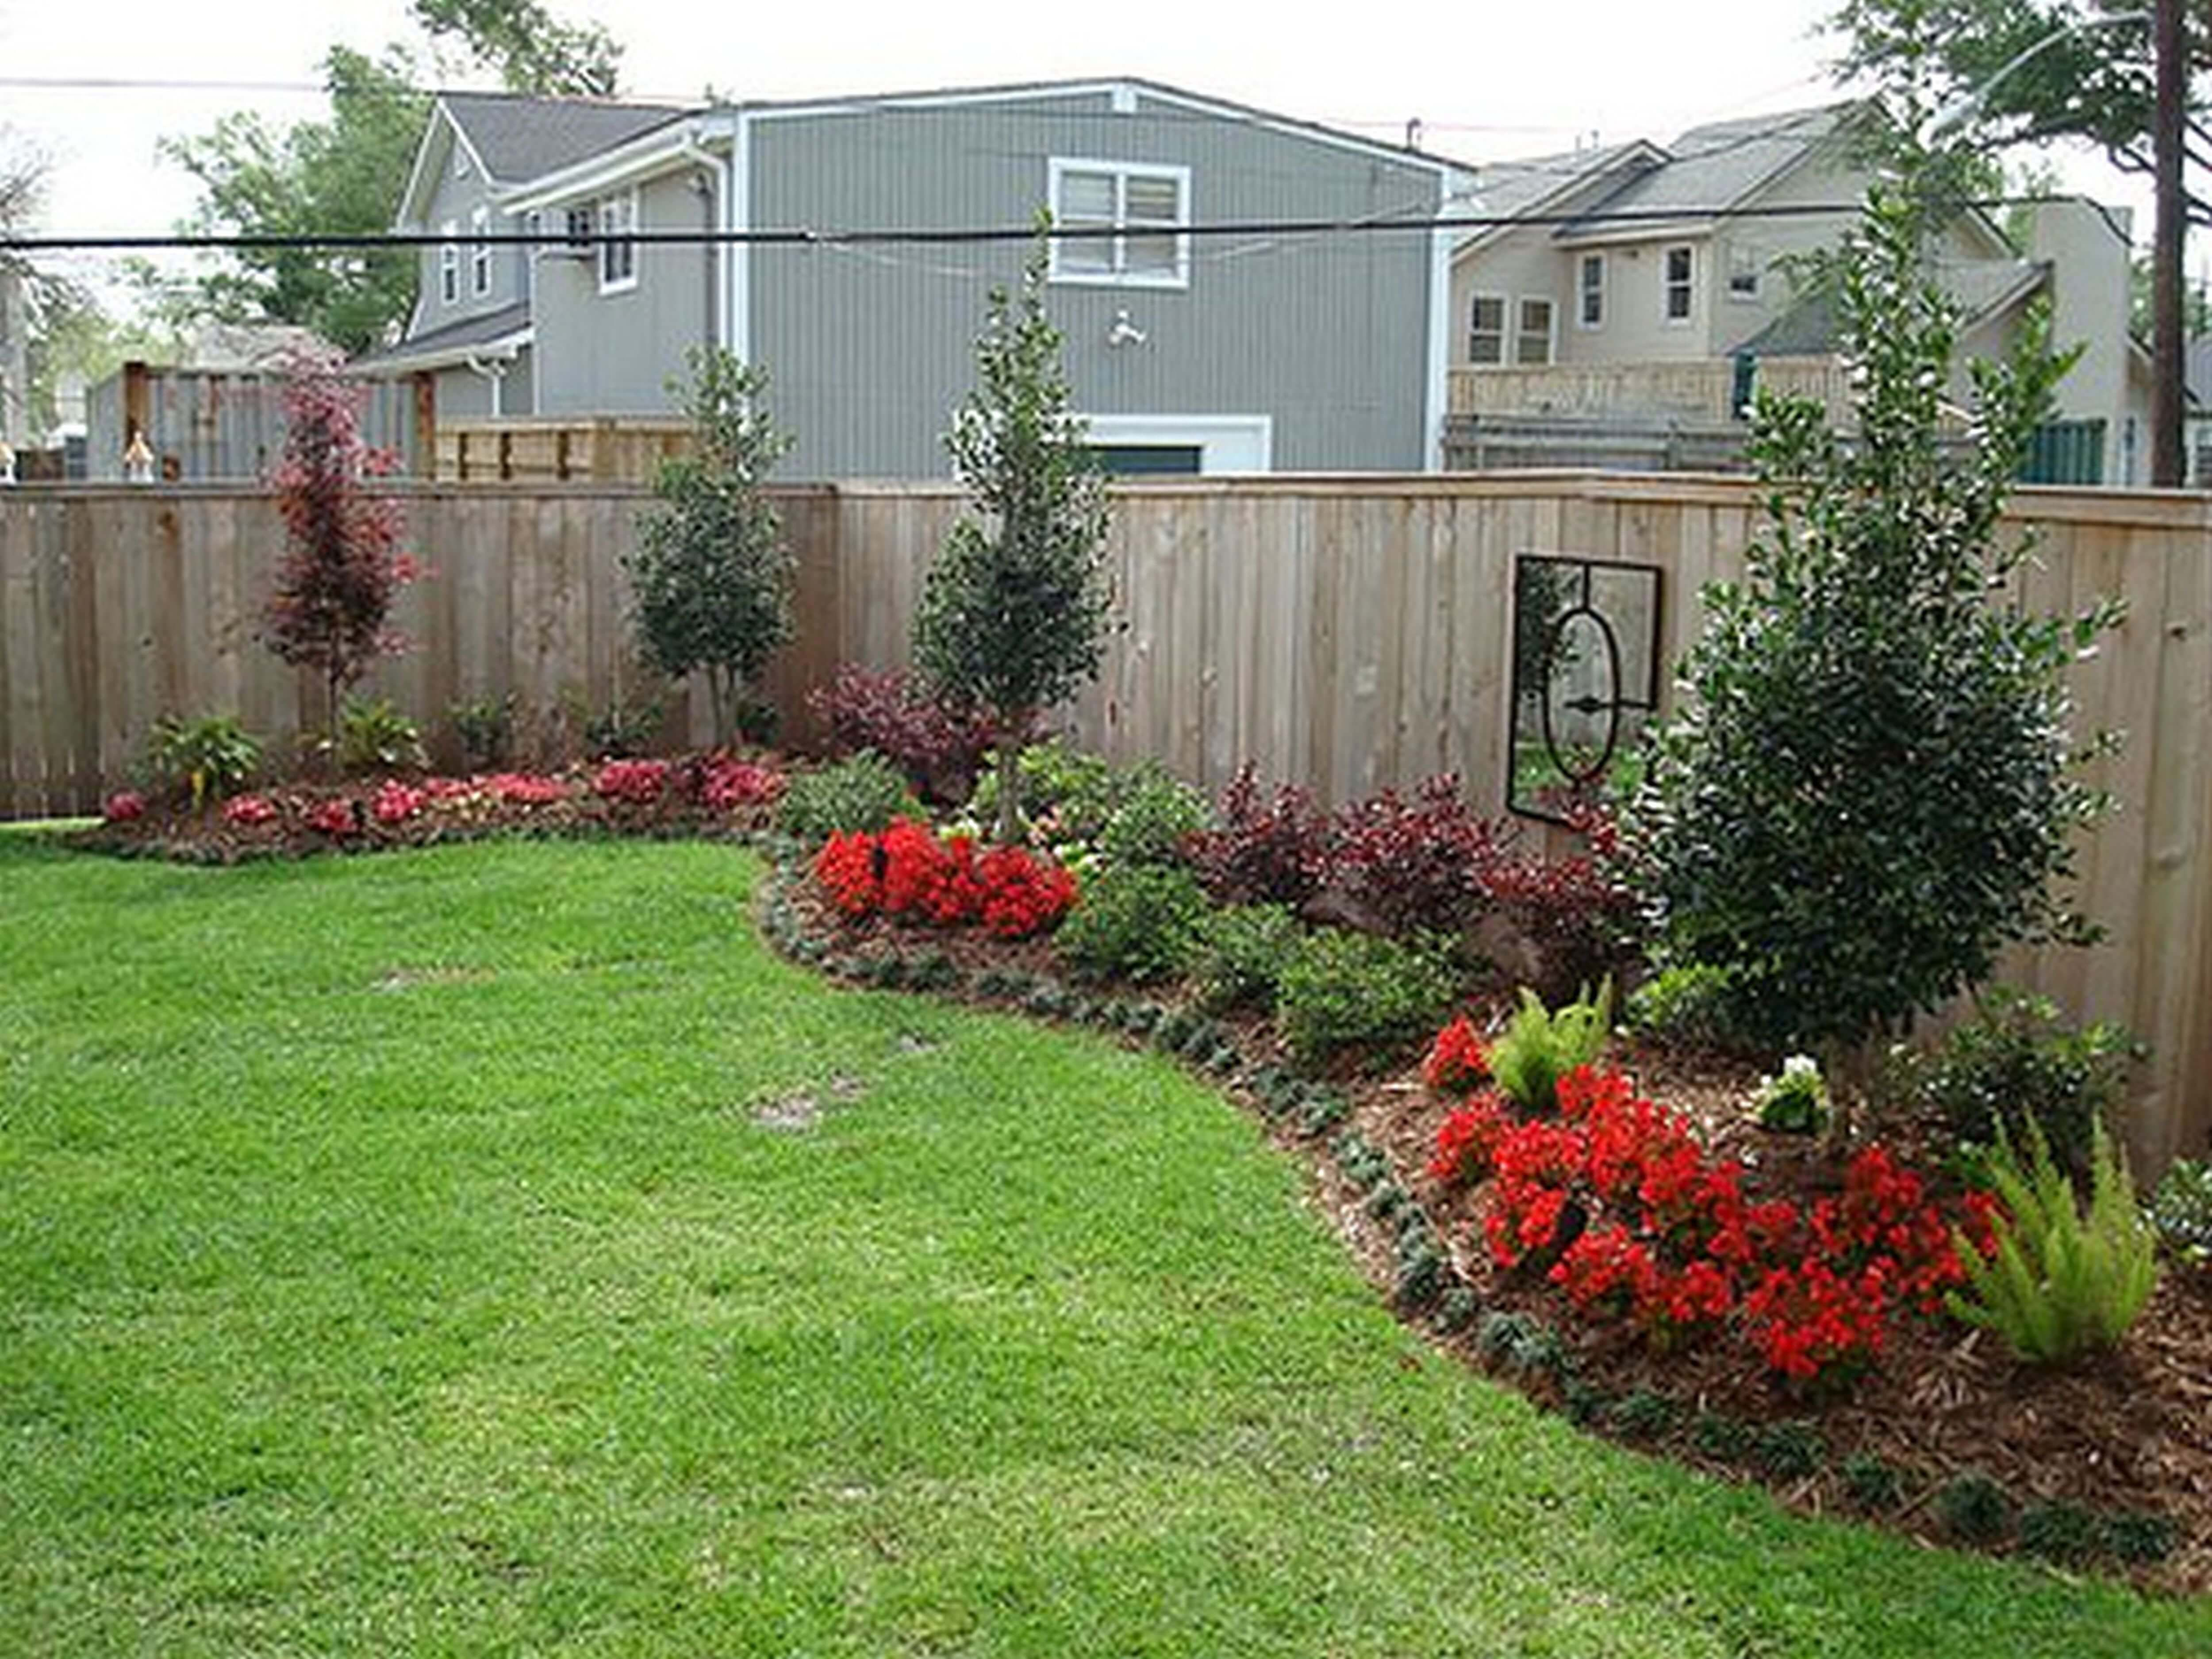 backyard gardening archives jolene s gardening small on layouts and landscaping small backyards ideas id=19064